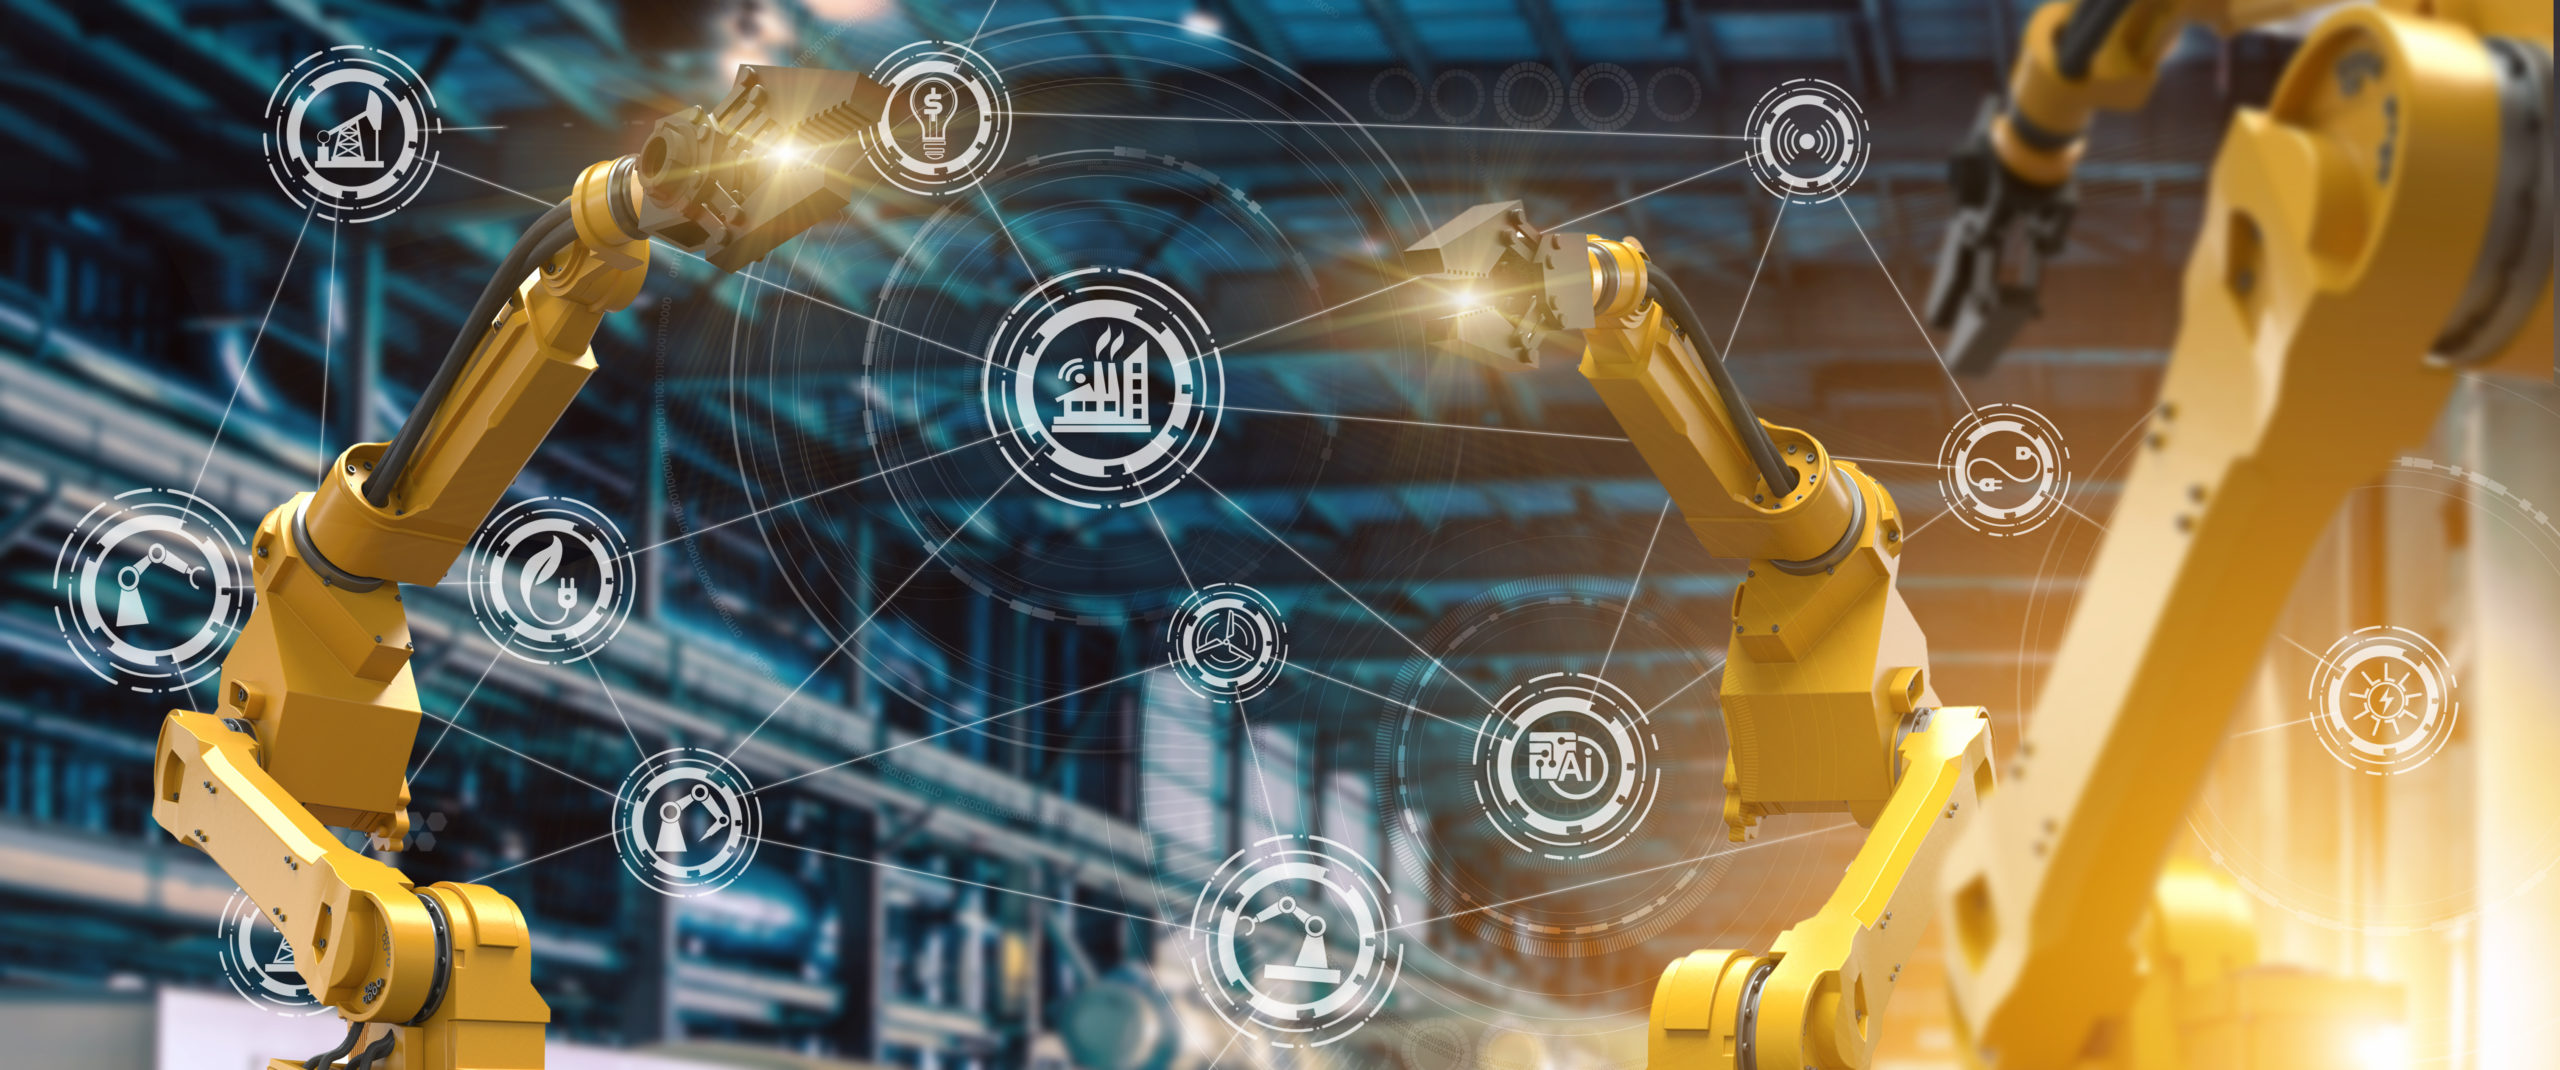 Making Industry 4.0 a Reality